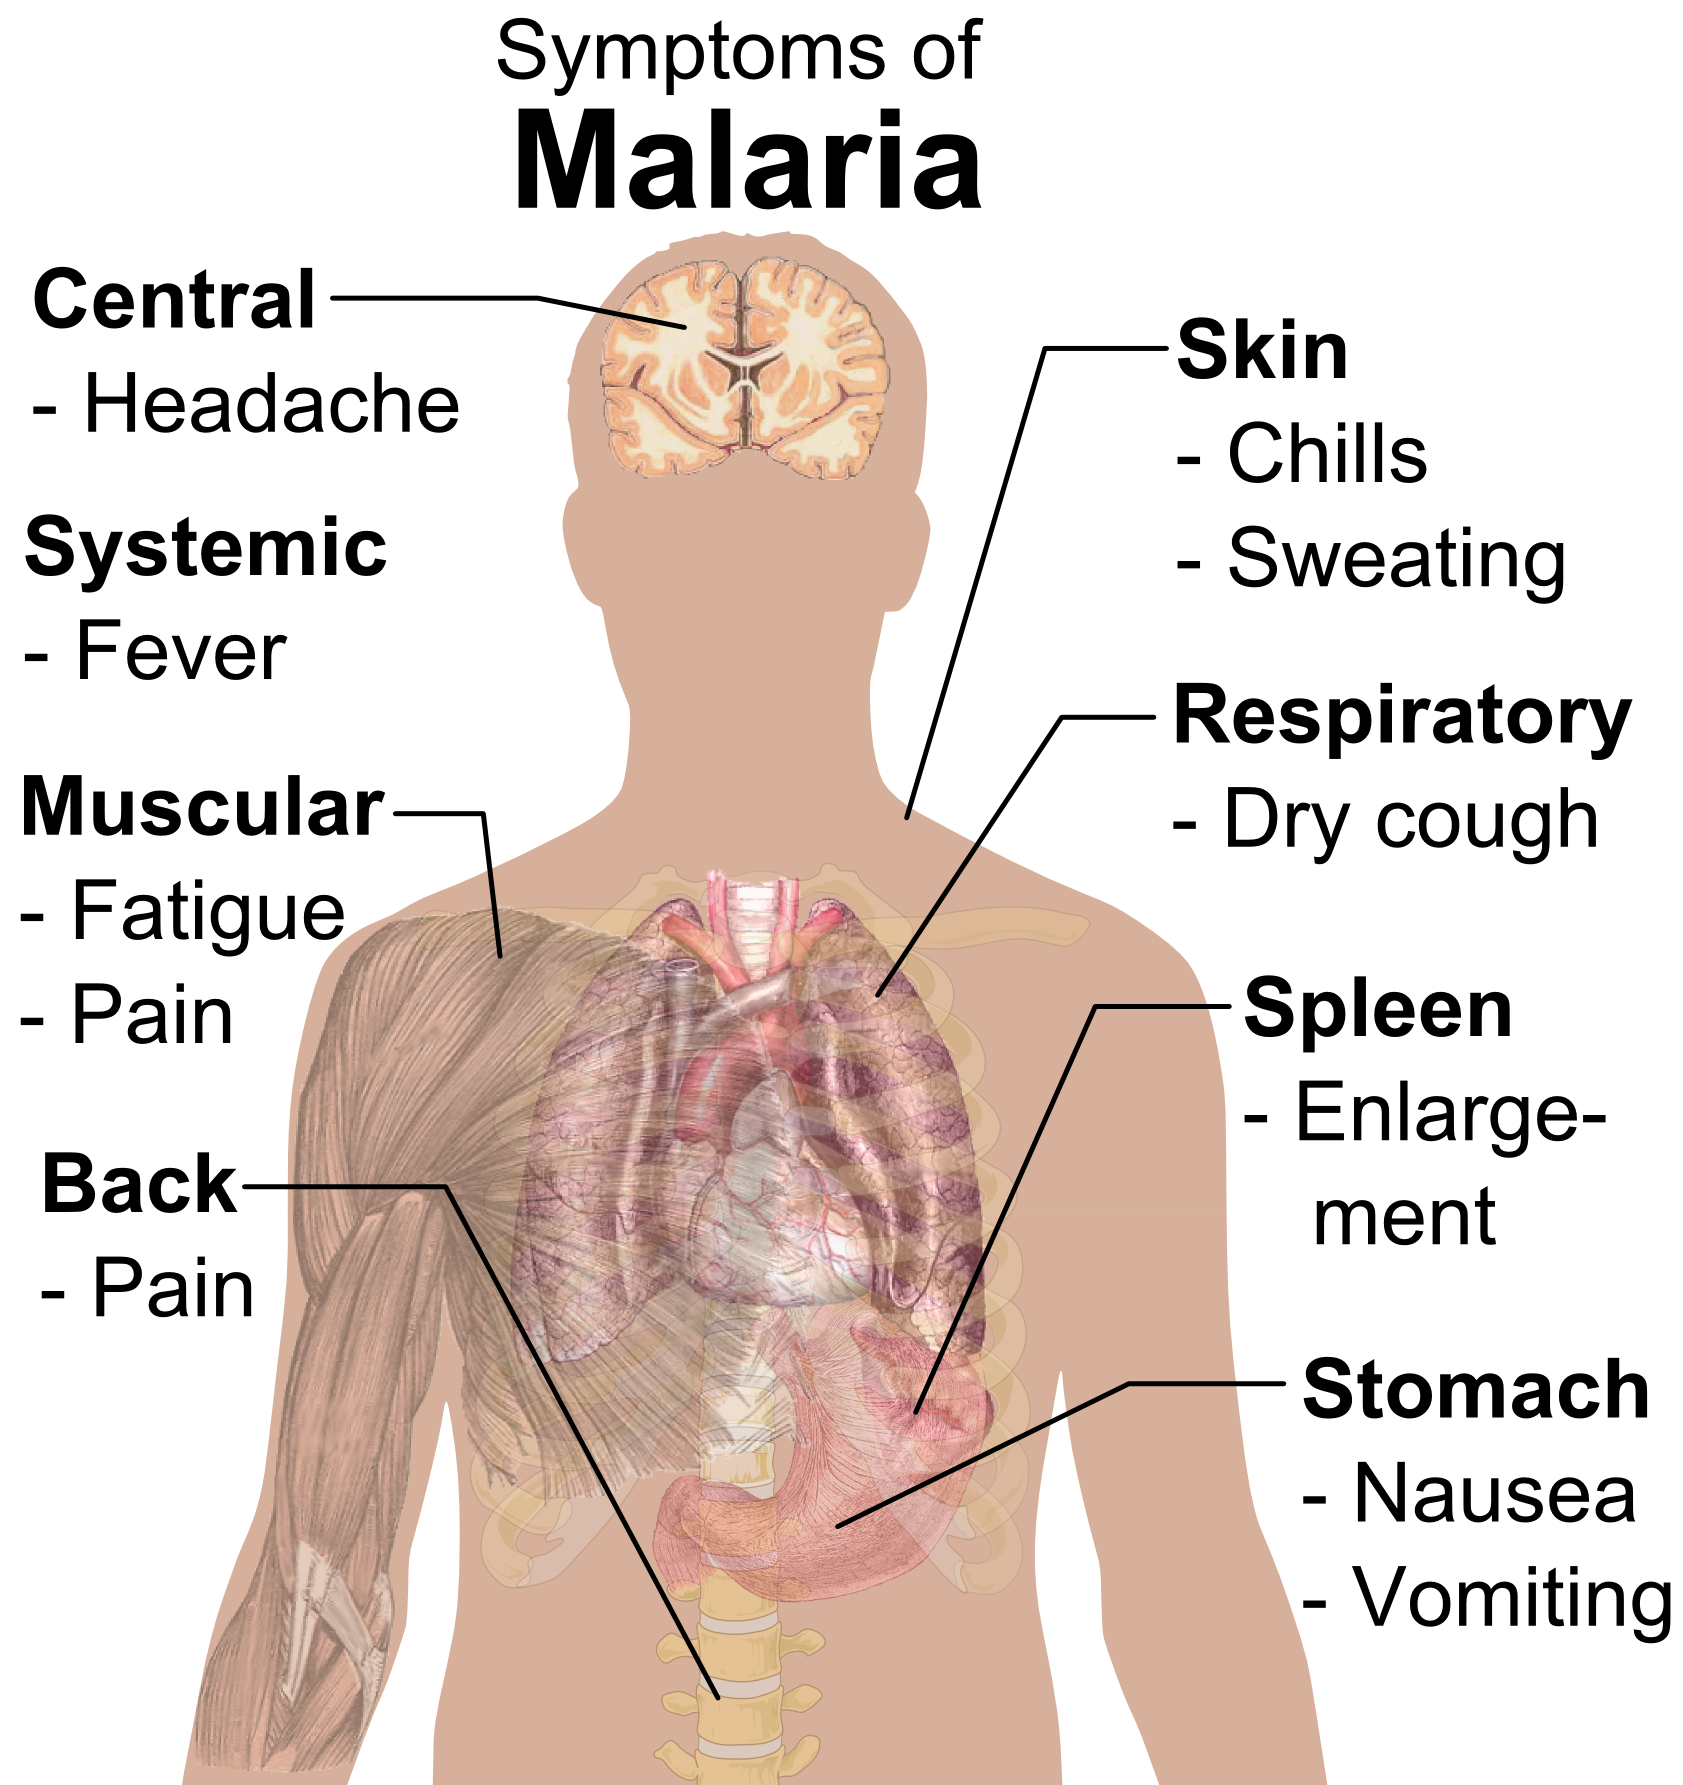 best images about malaria doesn t need to be such a great 17 best images about malaria doesn t need to be such a great killer on health vintage illustrations and yellow fever